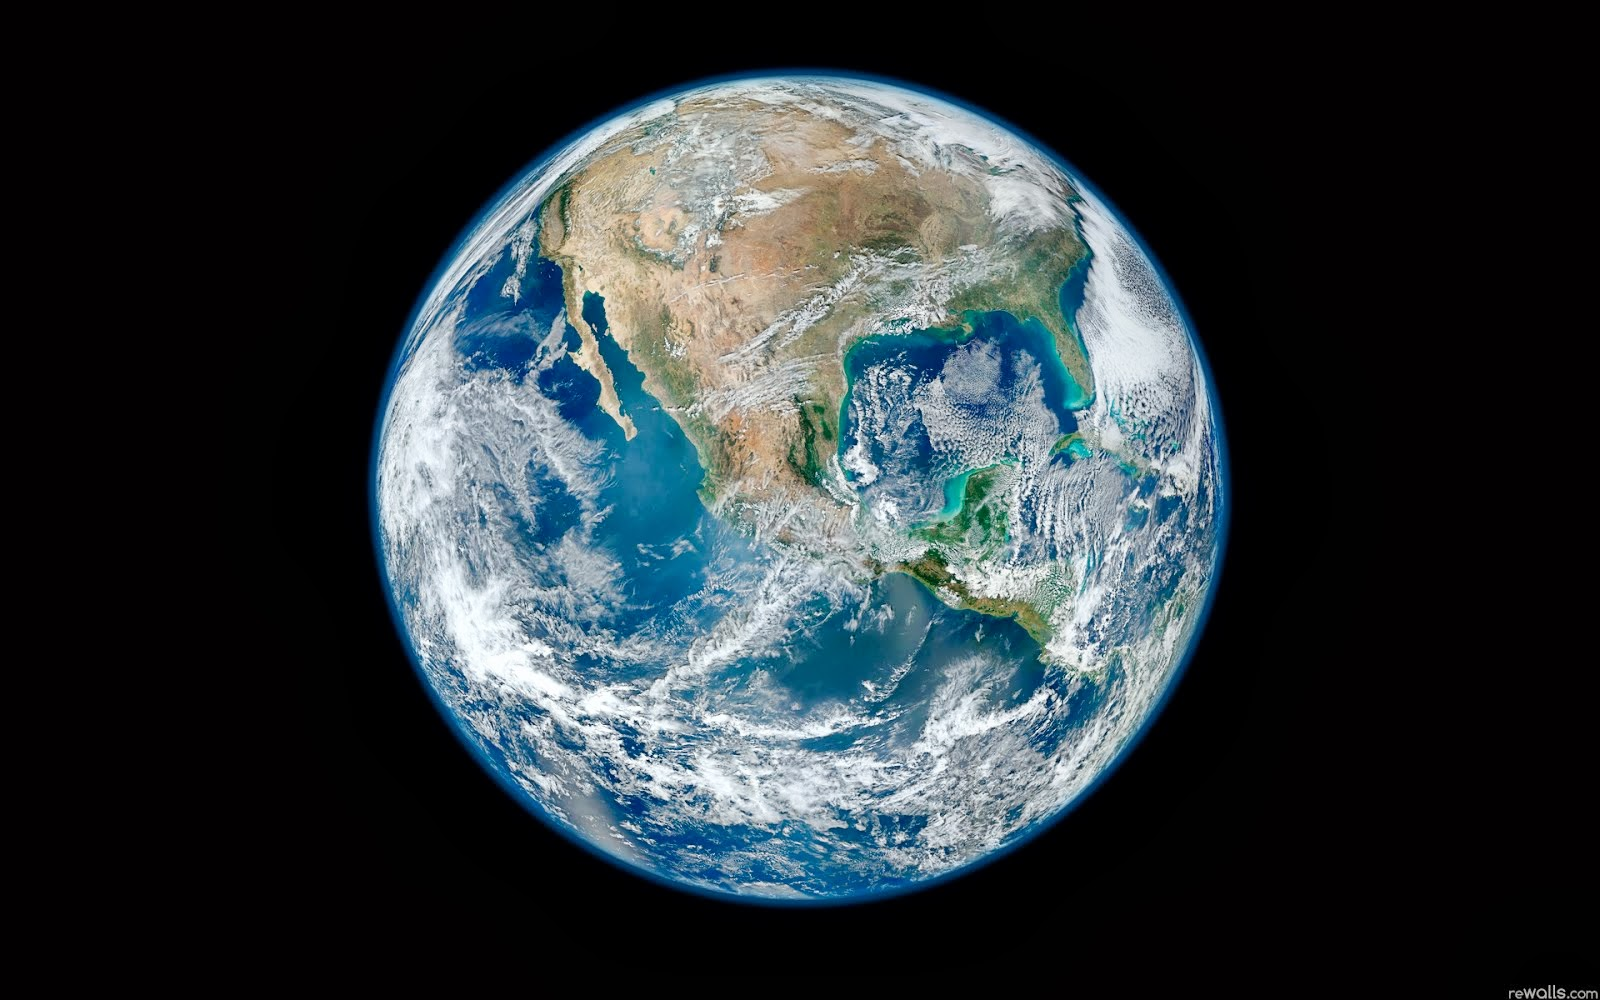 Earth From Space Wallpaper | Space Wallpaper